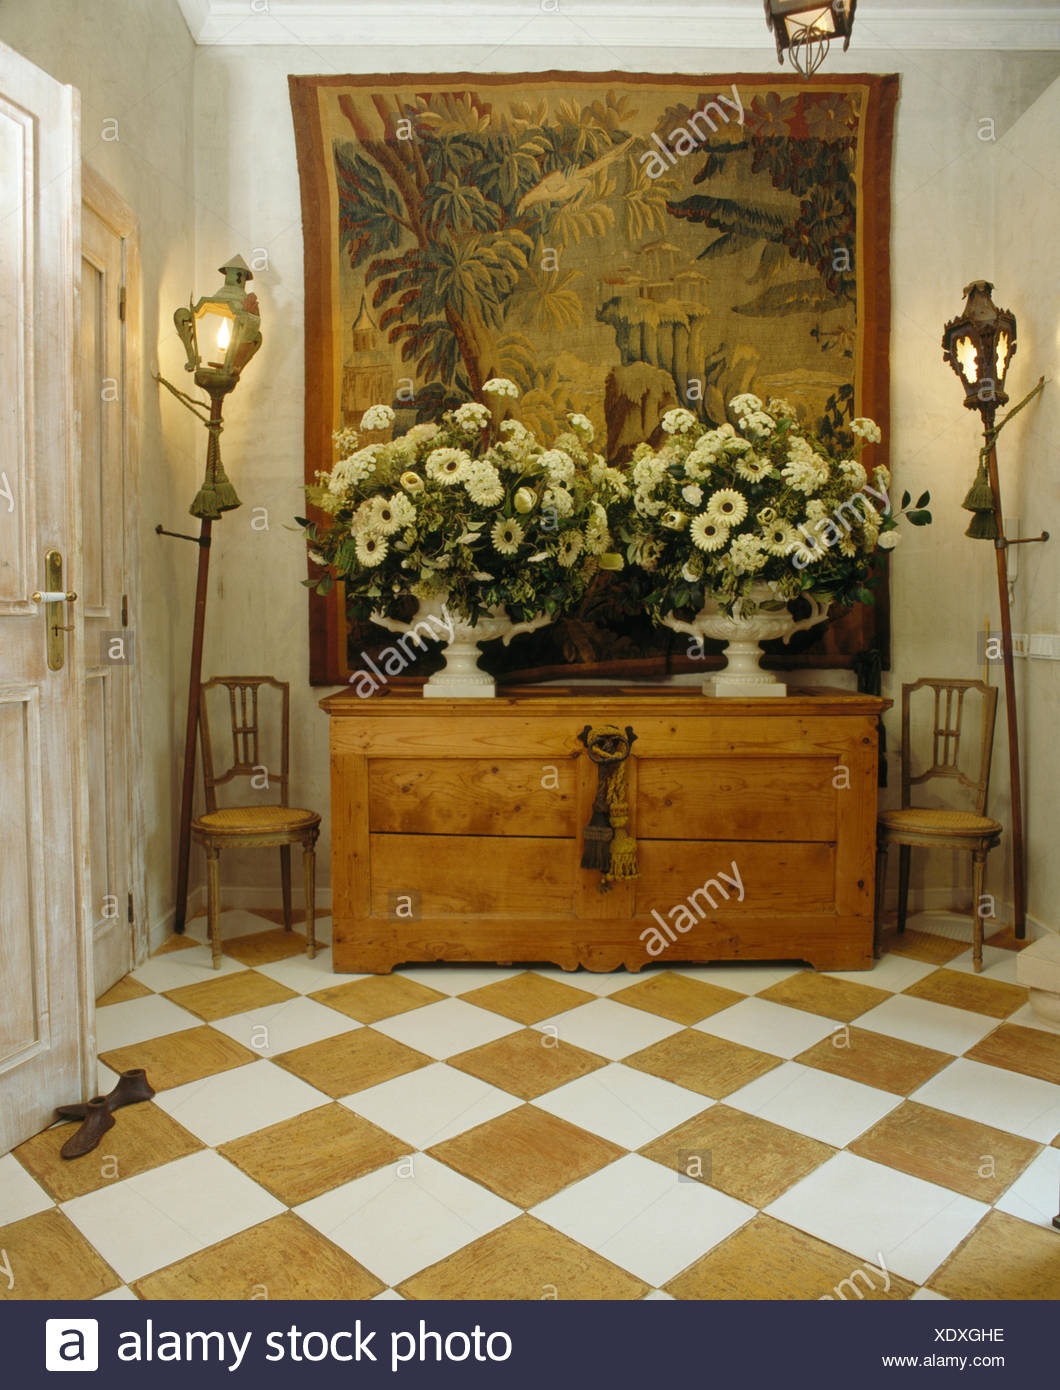 Yellow+white chequerboard floor in hall with tapestry above large floral arrangements on antique pine chest - Stock Image